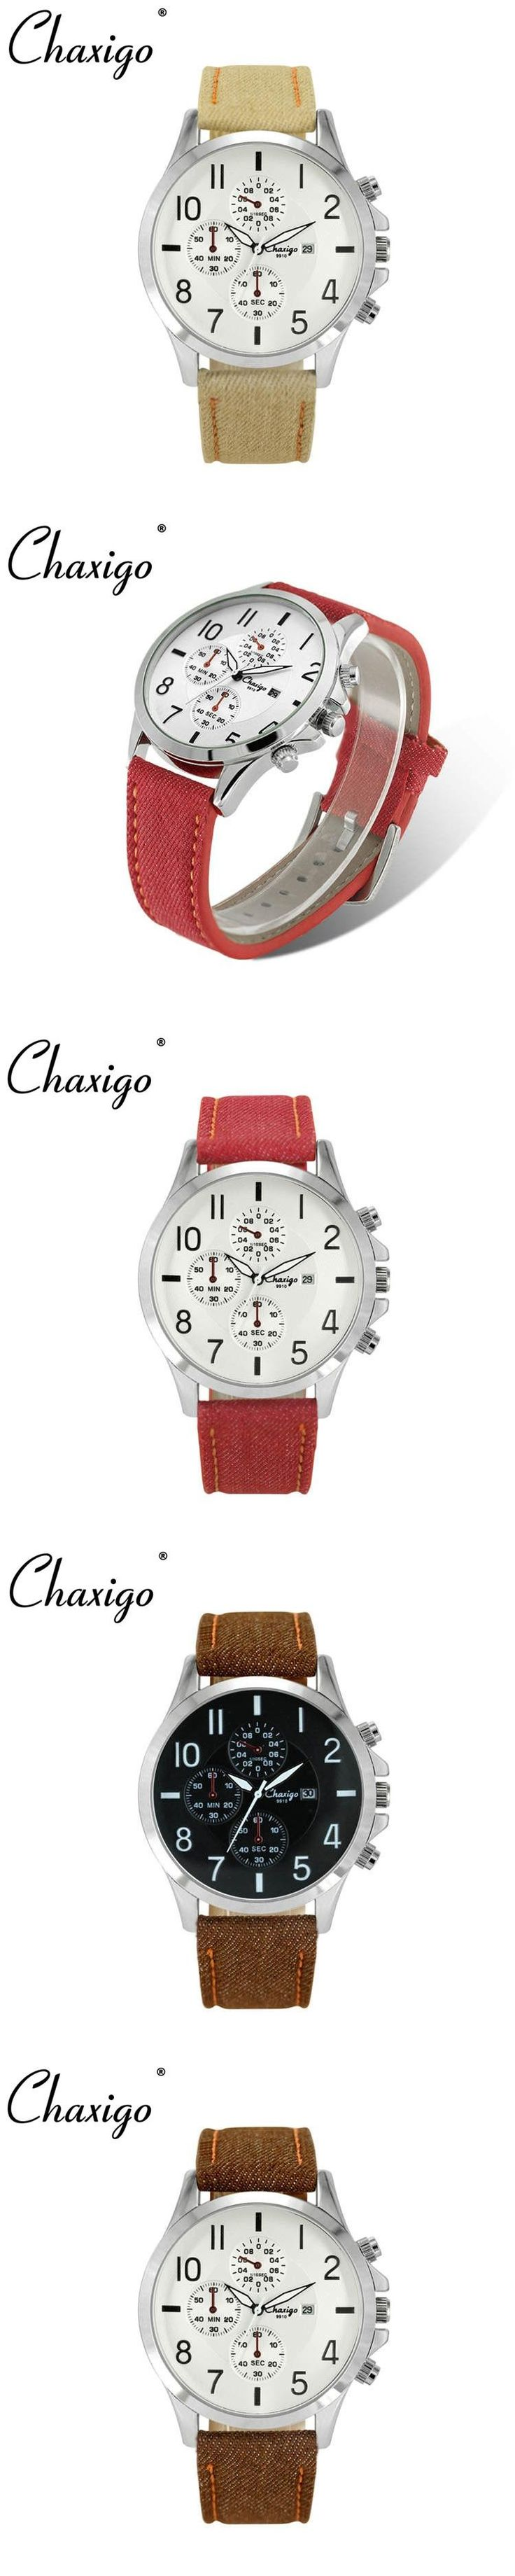 Chaxigo Colorful Fabric Leather Band Waterproof Watch Men Male Casual Wrist Watch Clock Military Style Watches With Red Band